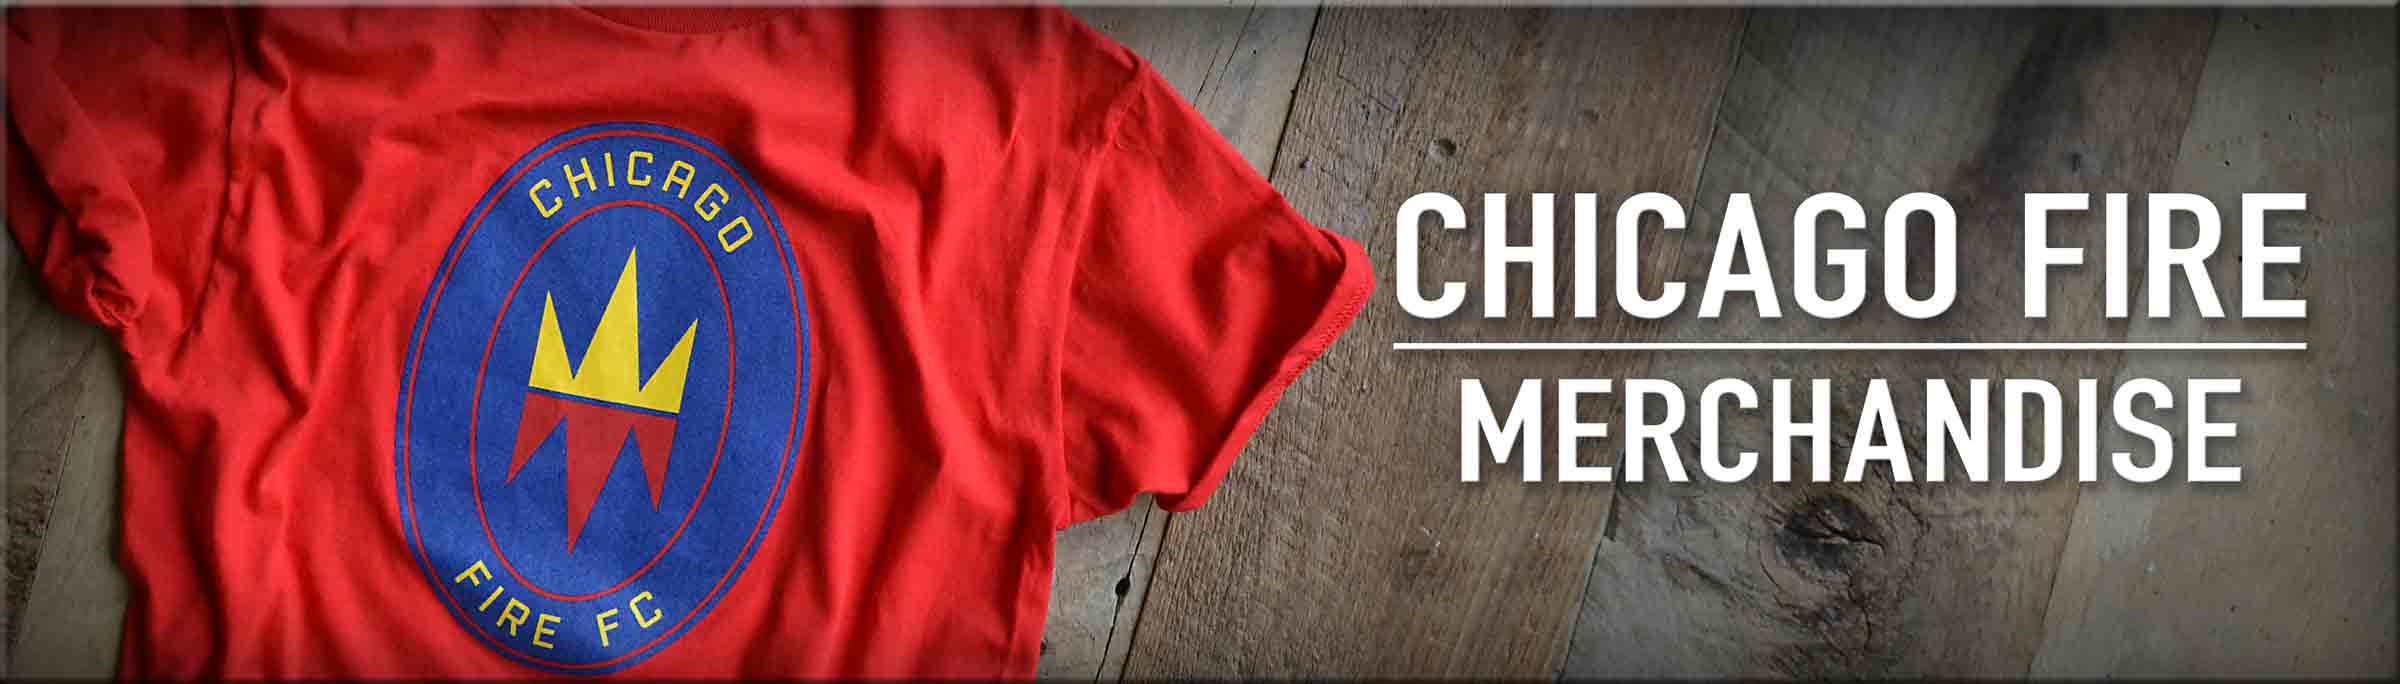 Shop Chicago Fire Merchandise, including this Chicago Fire Short Sleeve Adidas T-Shirt